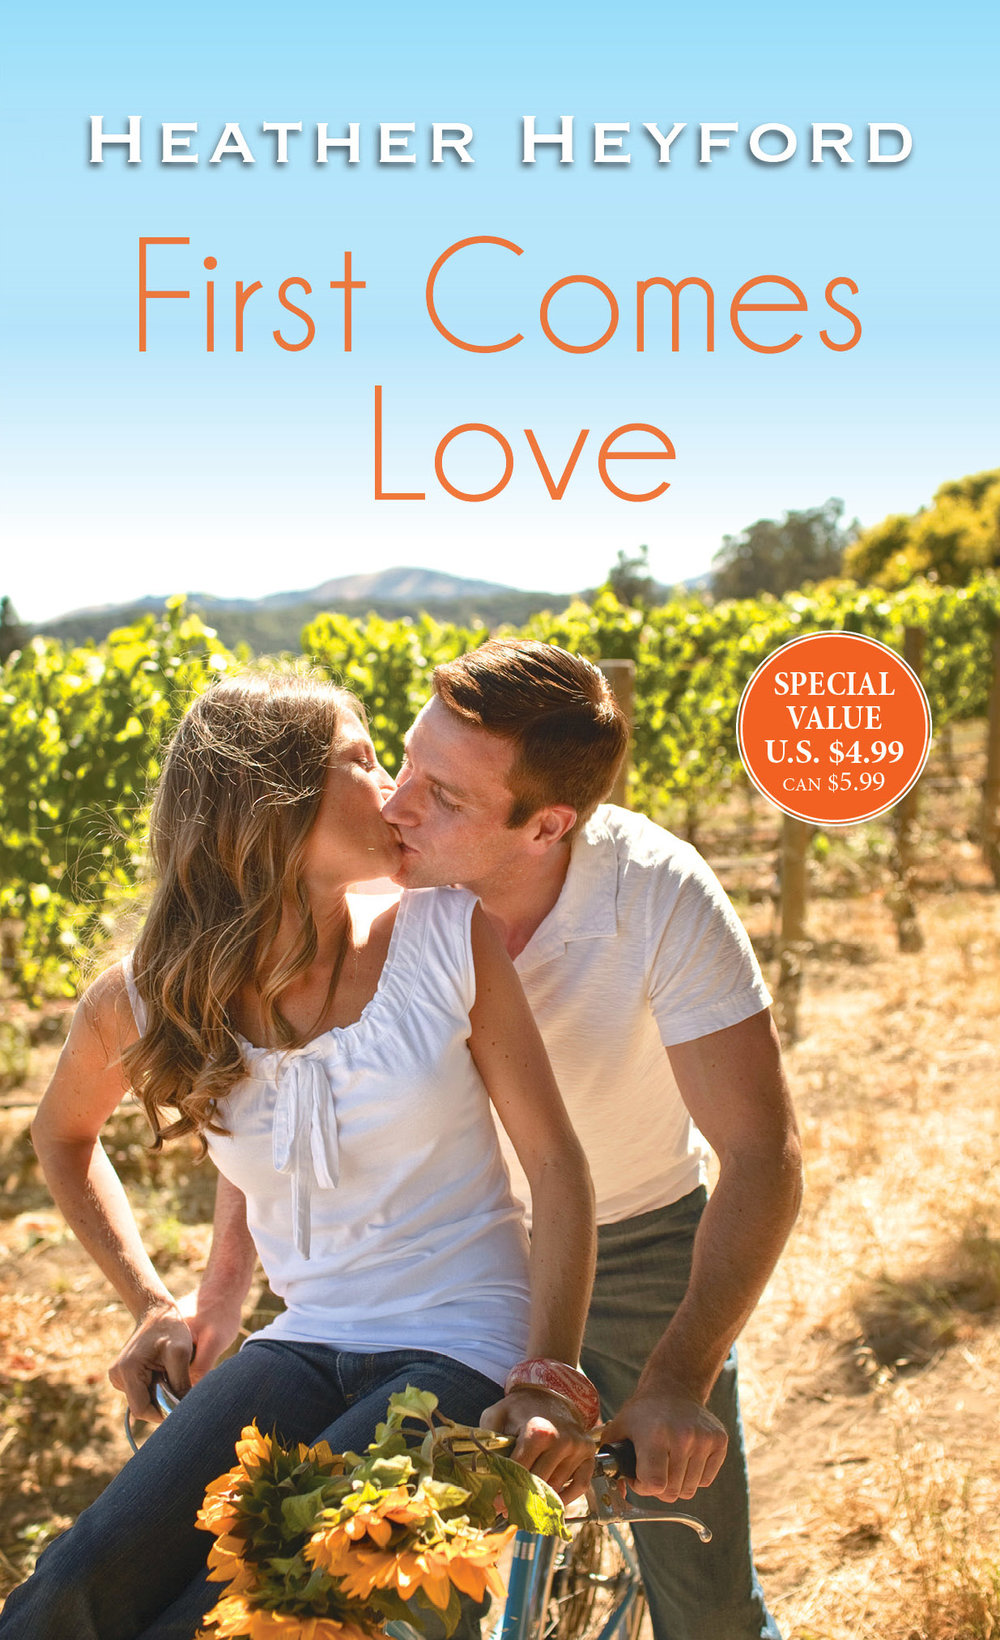 Enter here to win a print copy of First Comes Love!  Contest ends August 8, 2018. Good luck! -